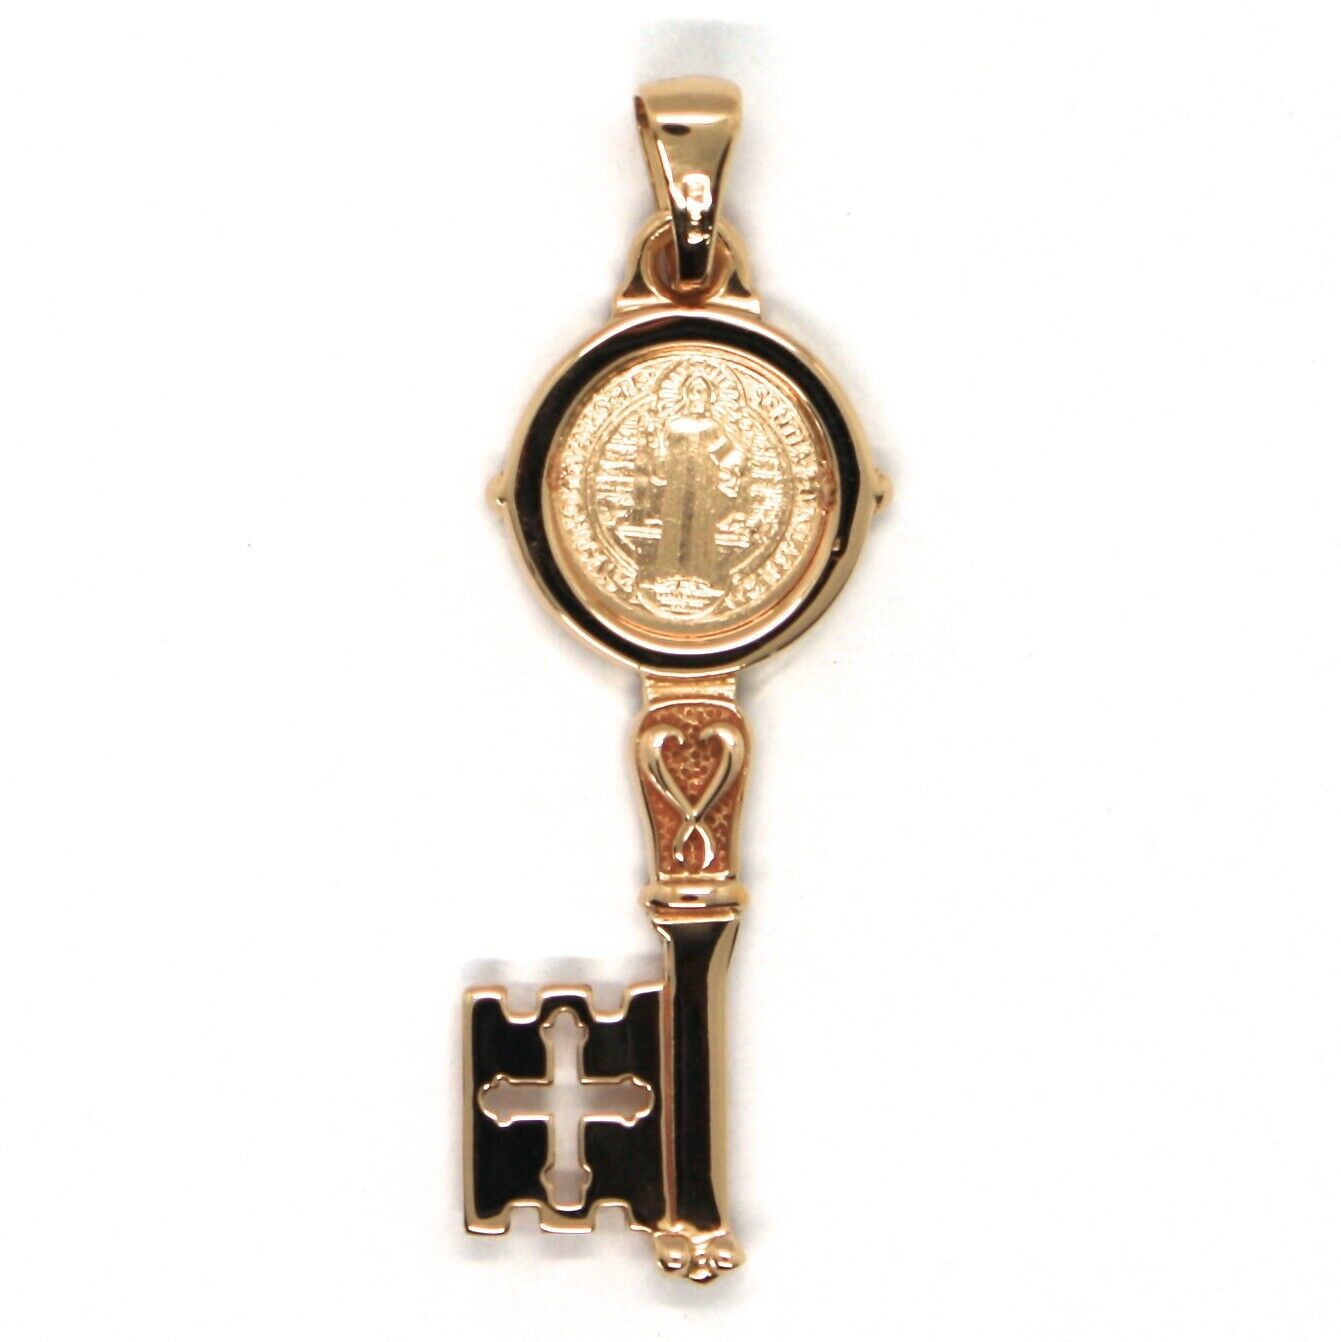 SOLID 18K ROSE GOLD KEY PENDANT, SAINT BENEDICT MEDAL, CROSS, 1.2 INCHES image 4